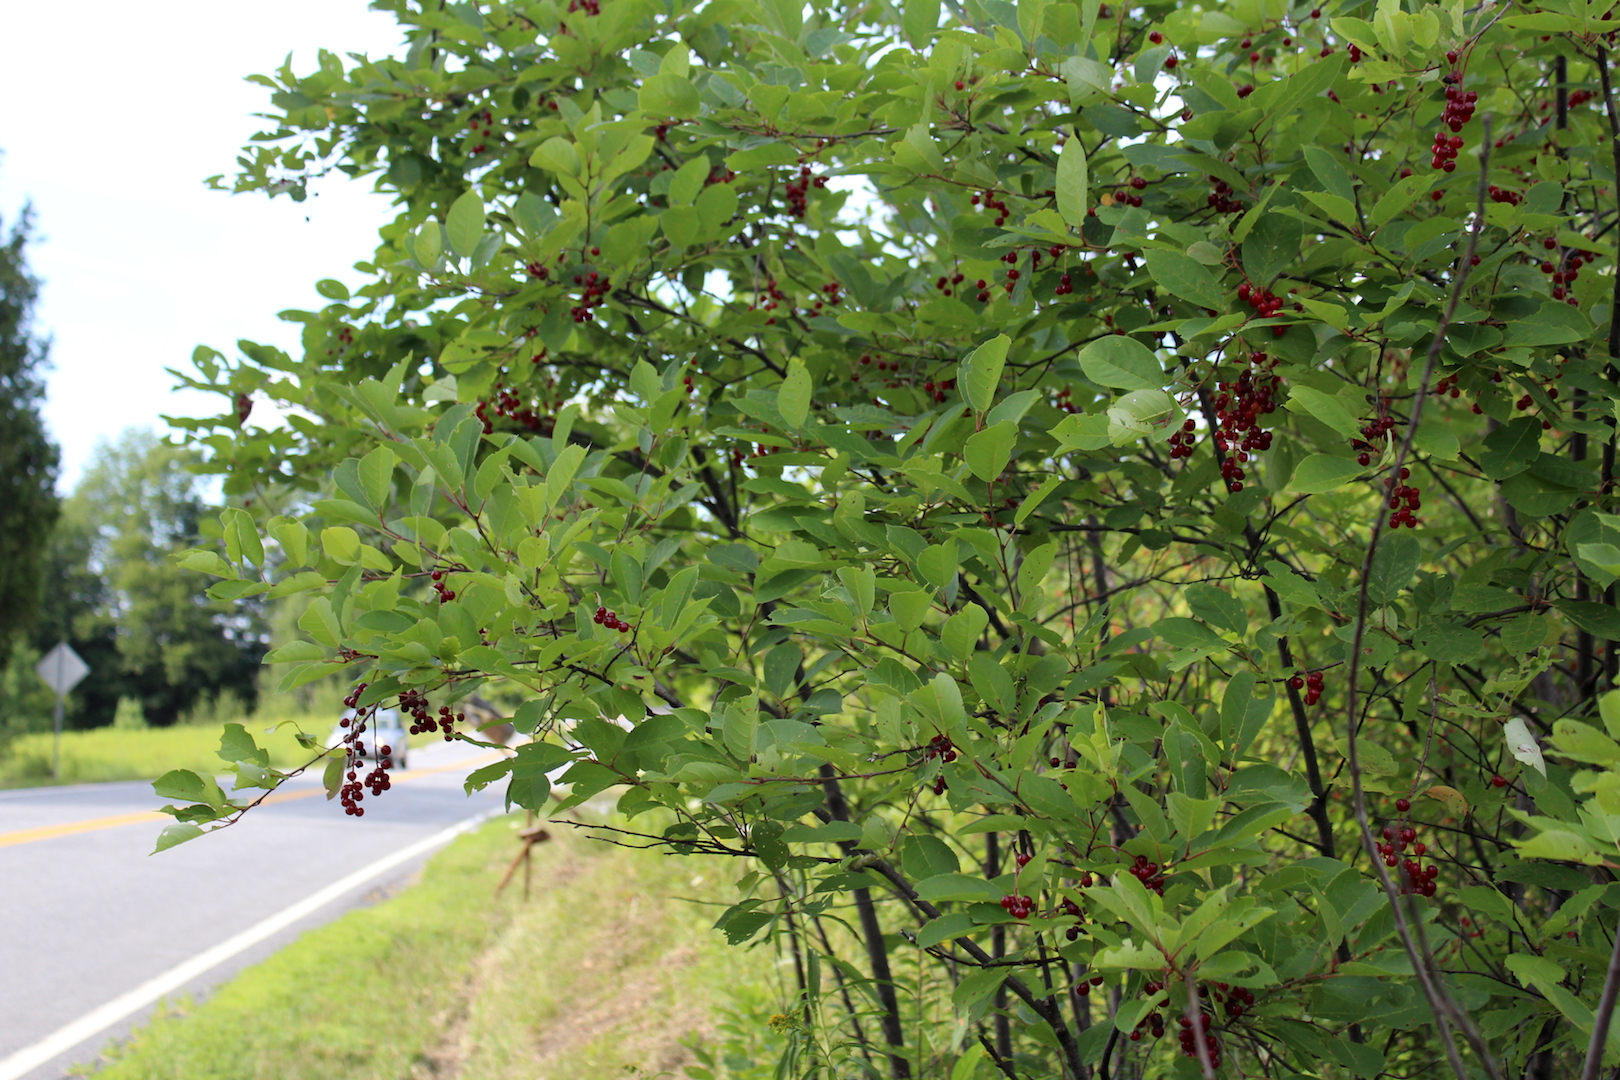 Roadside Chokecherry Bush